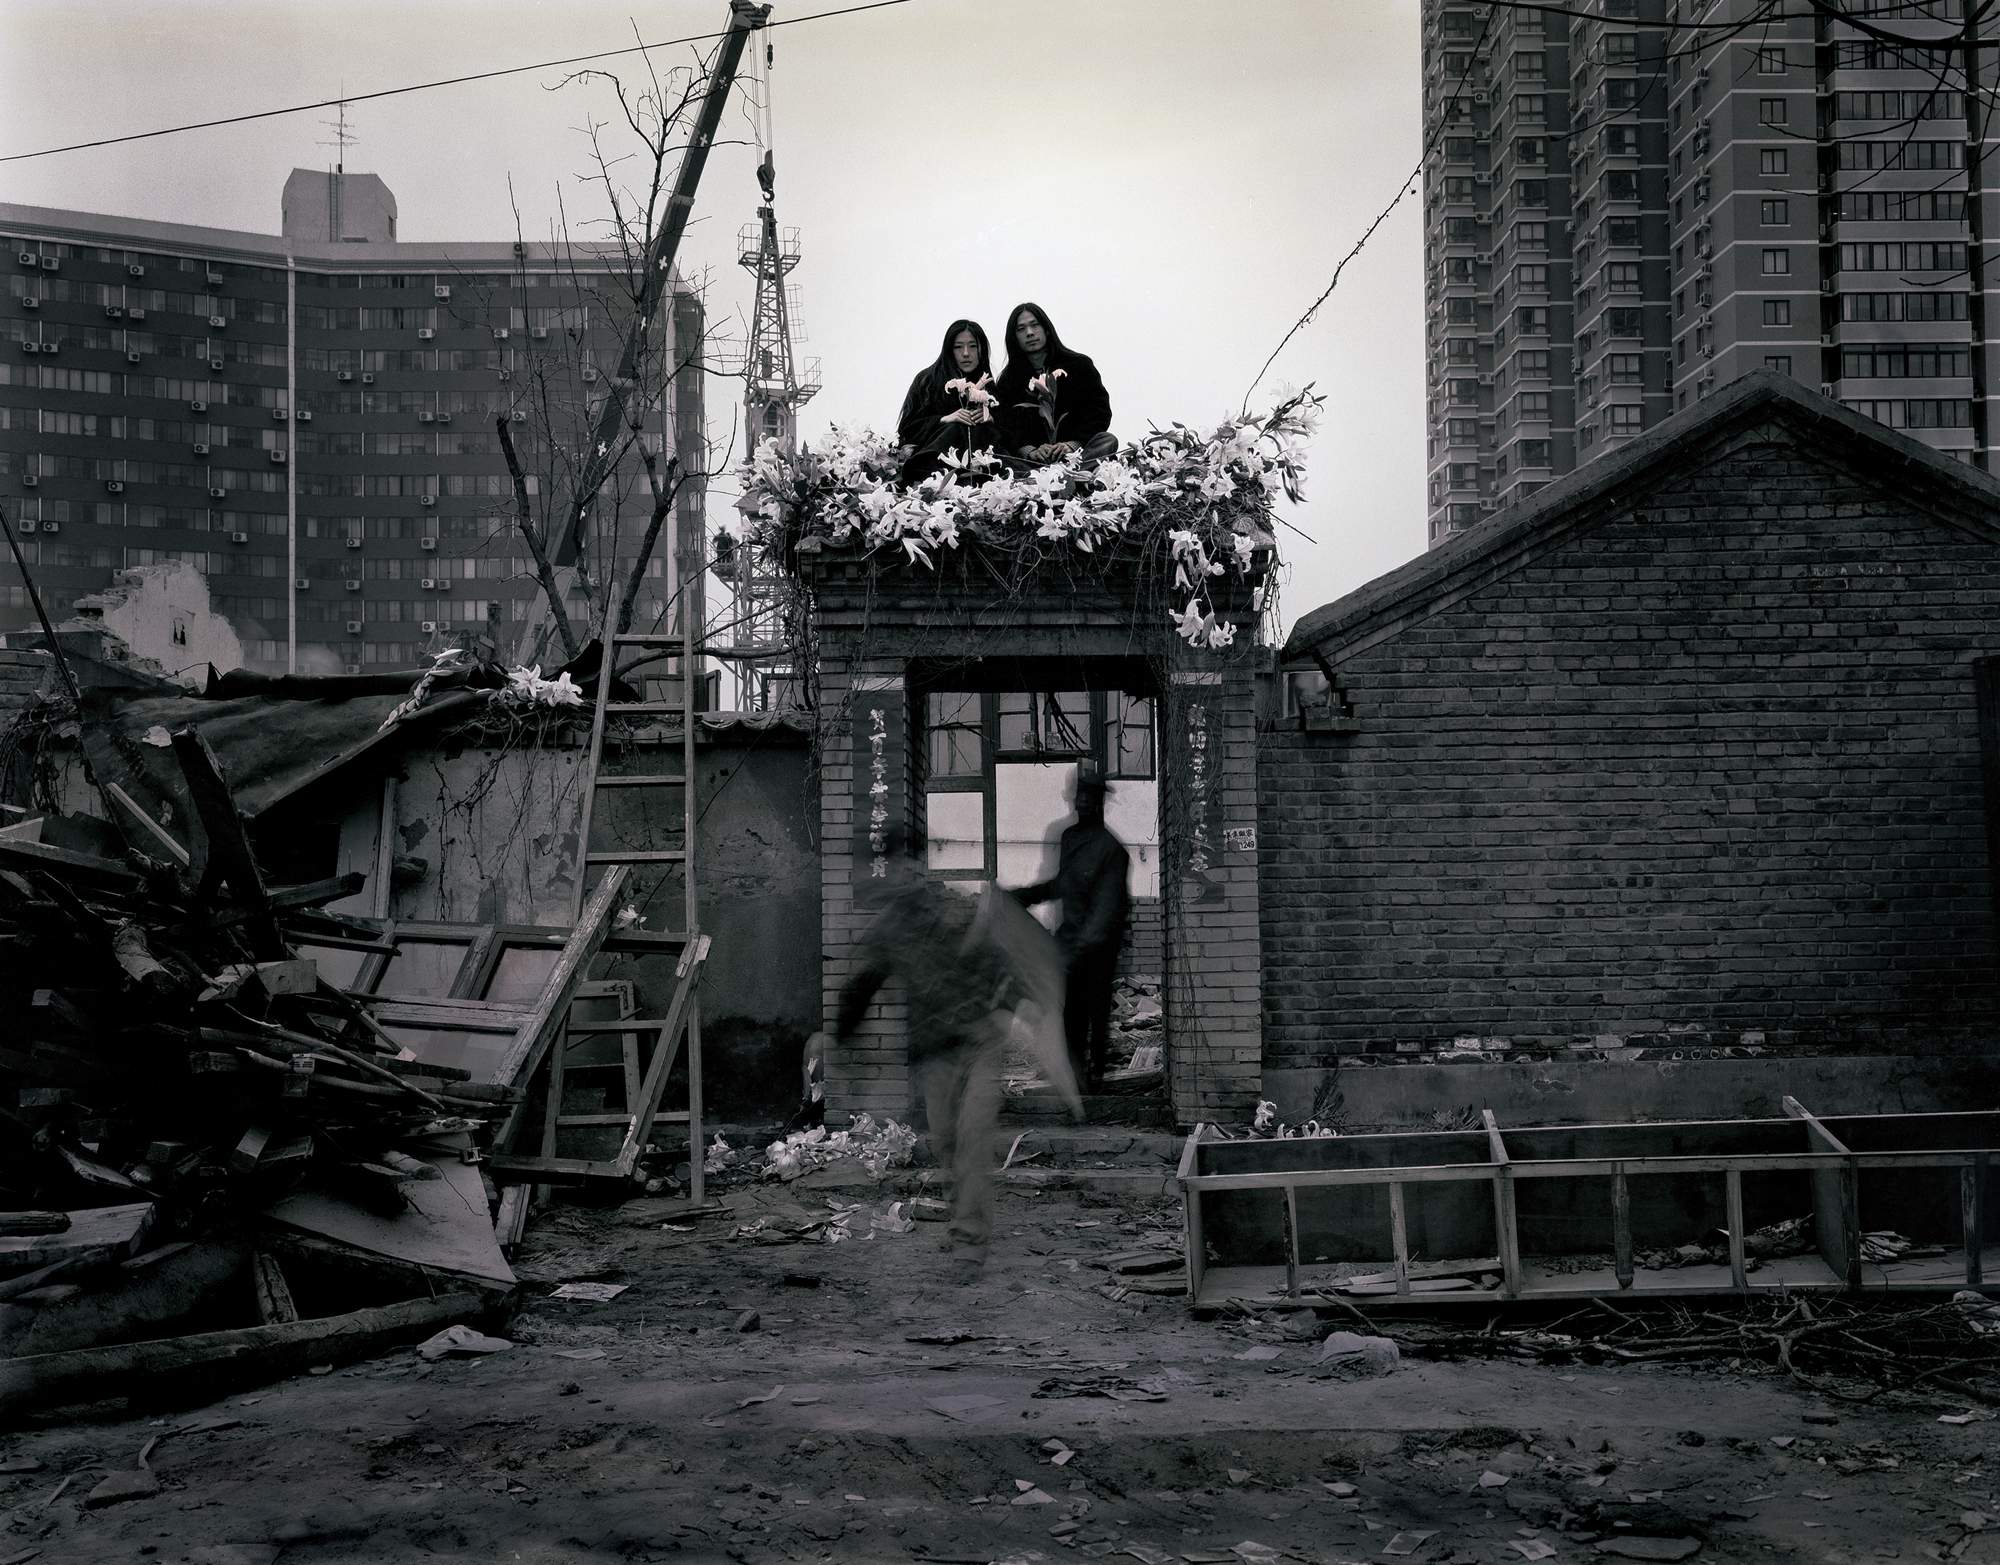 RongRong&Inri,  In Liulitun No.1 , Beijing, 2003